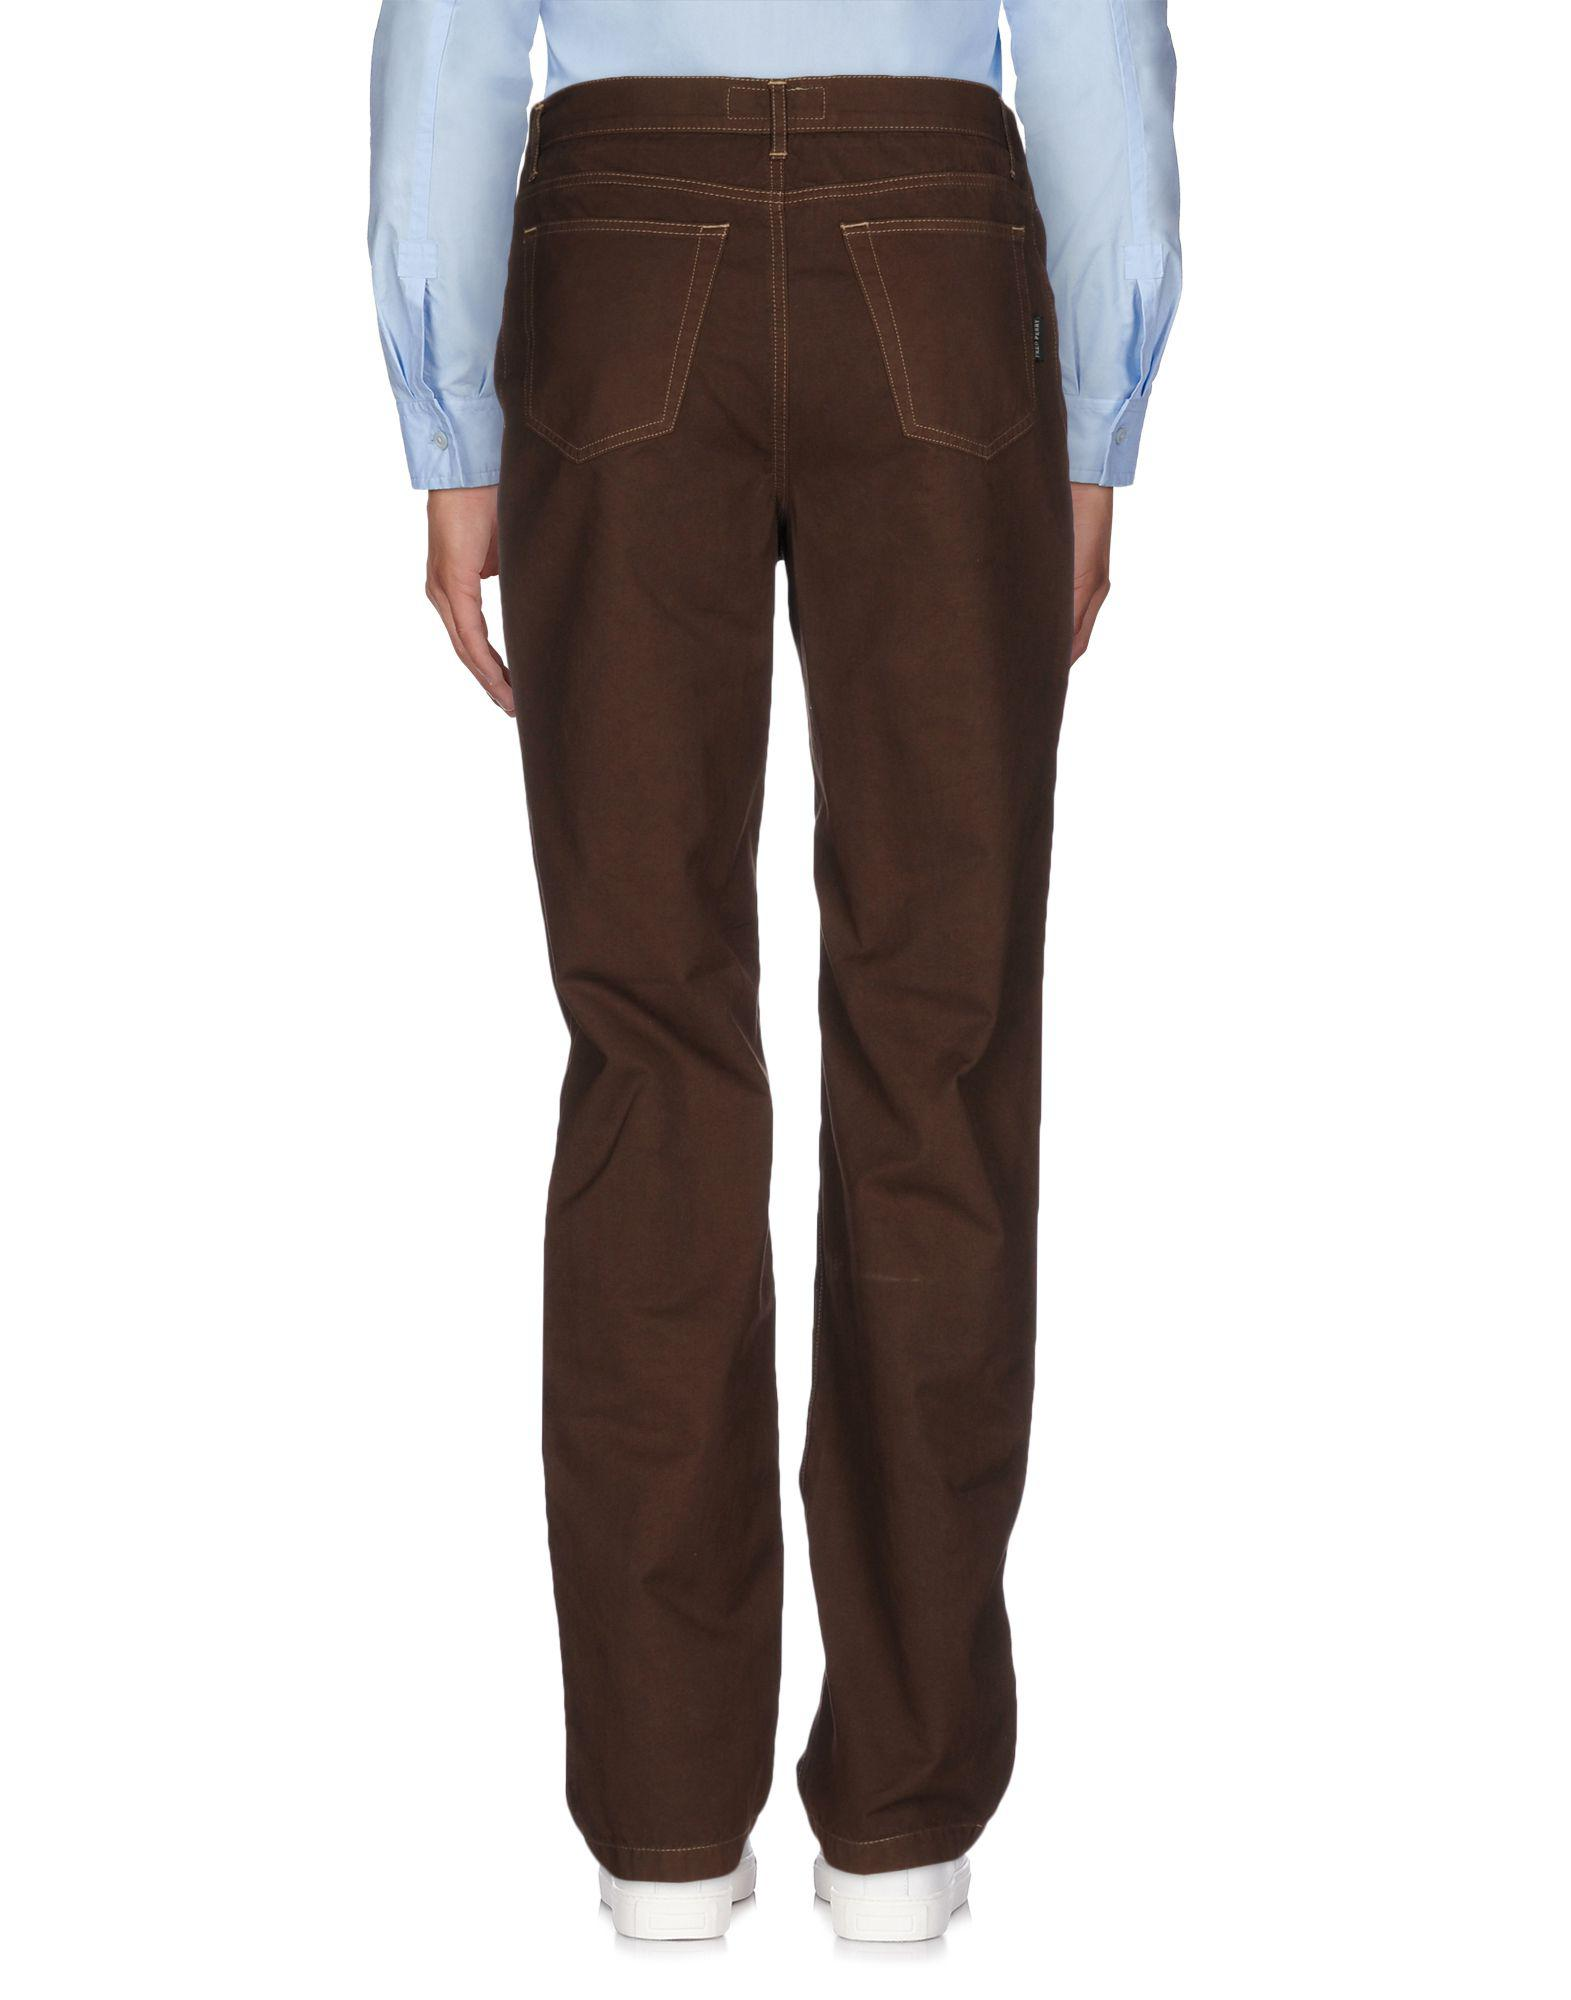 Fred Perry Cotton Casual Pants in Cocoa (Blue) for Men